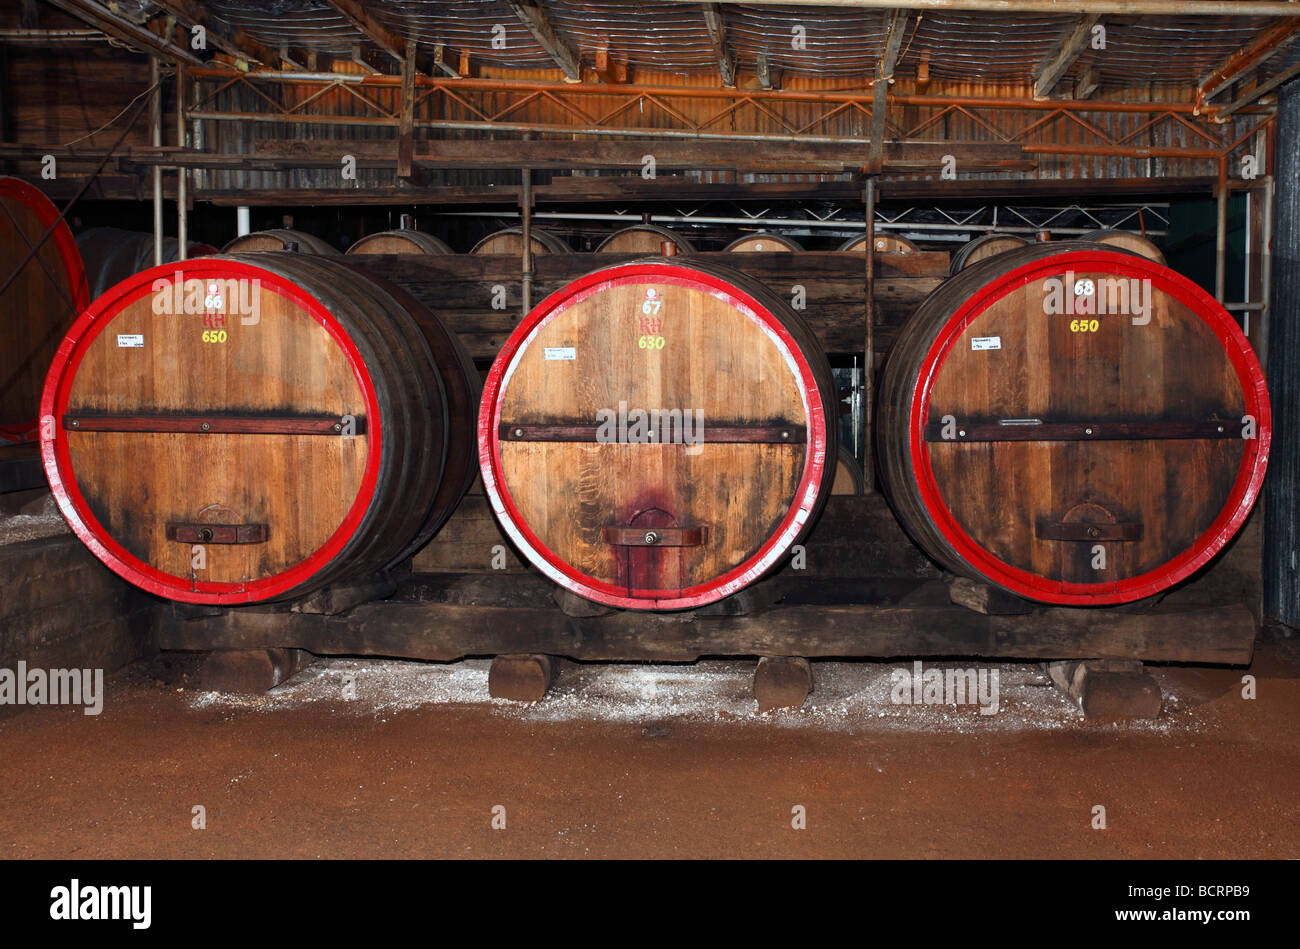 Wine cellar at Tyrrells Winery, Hunter Valley, Australia Stock Photo